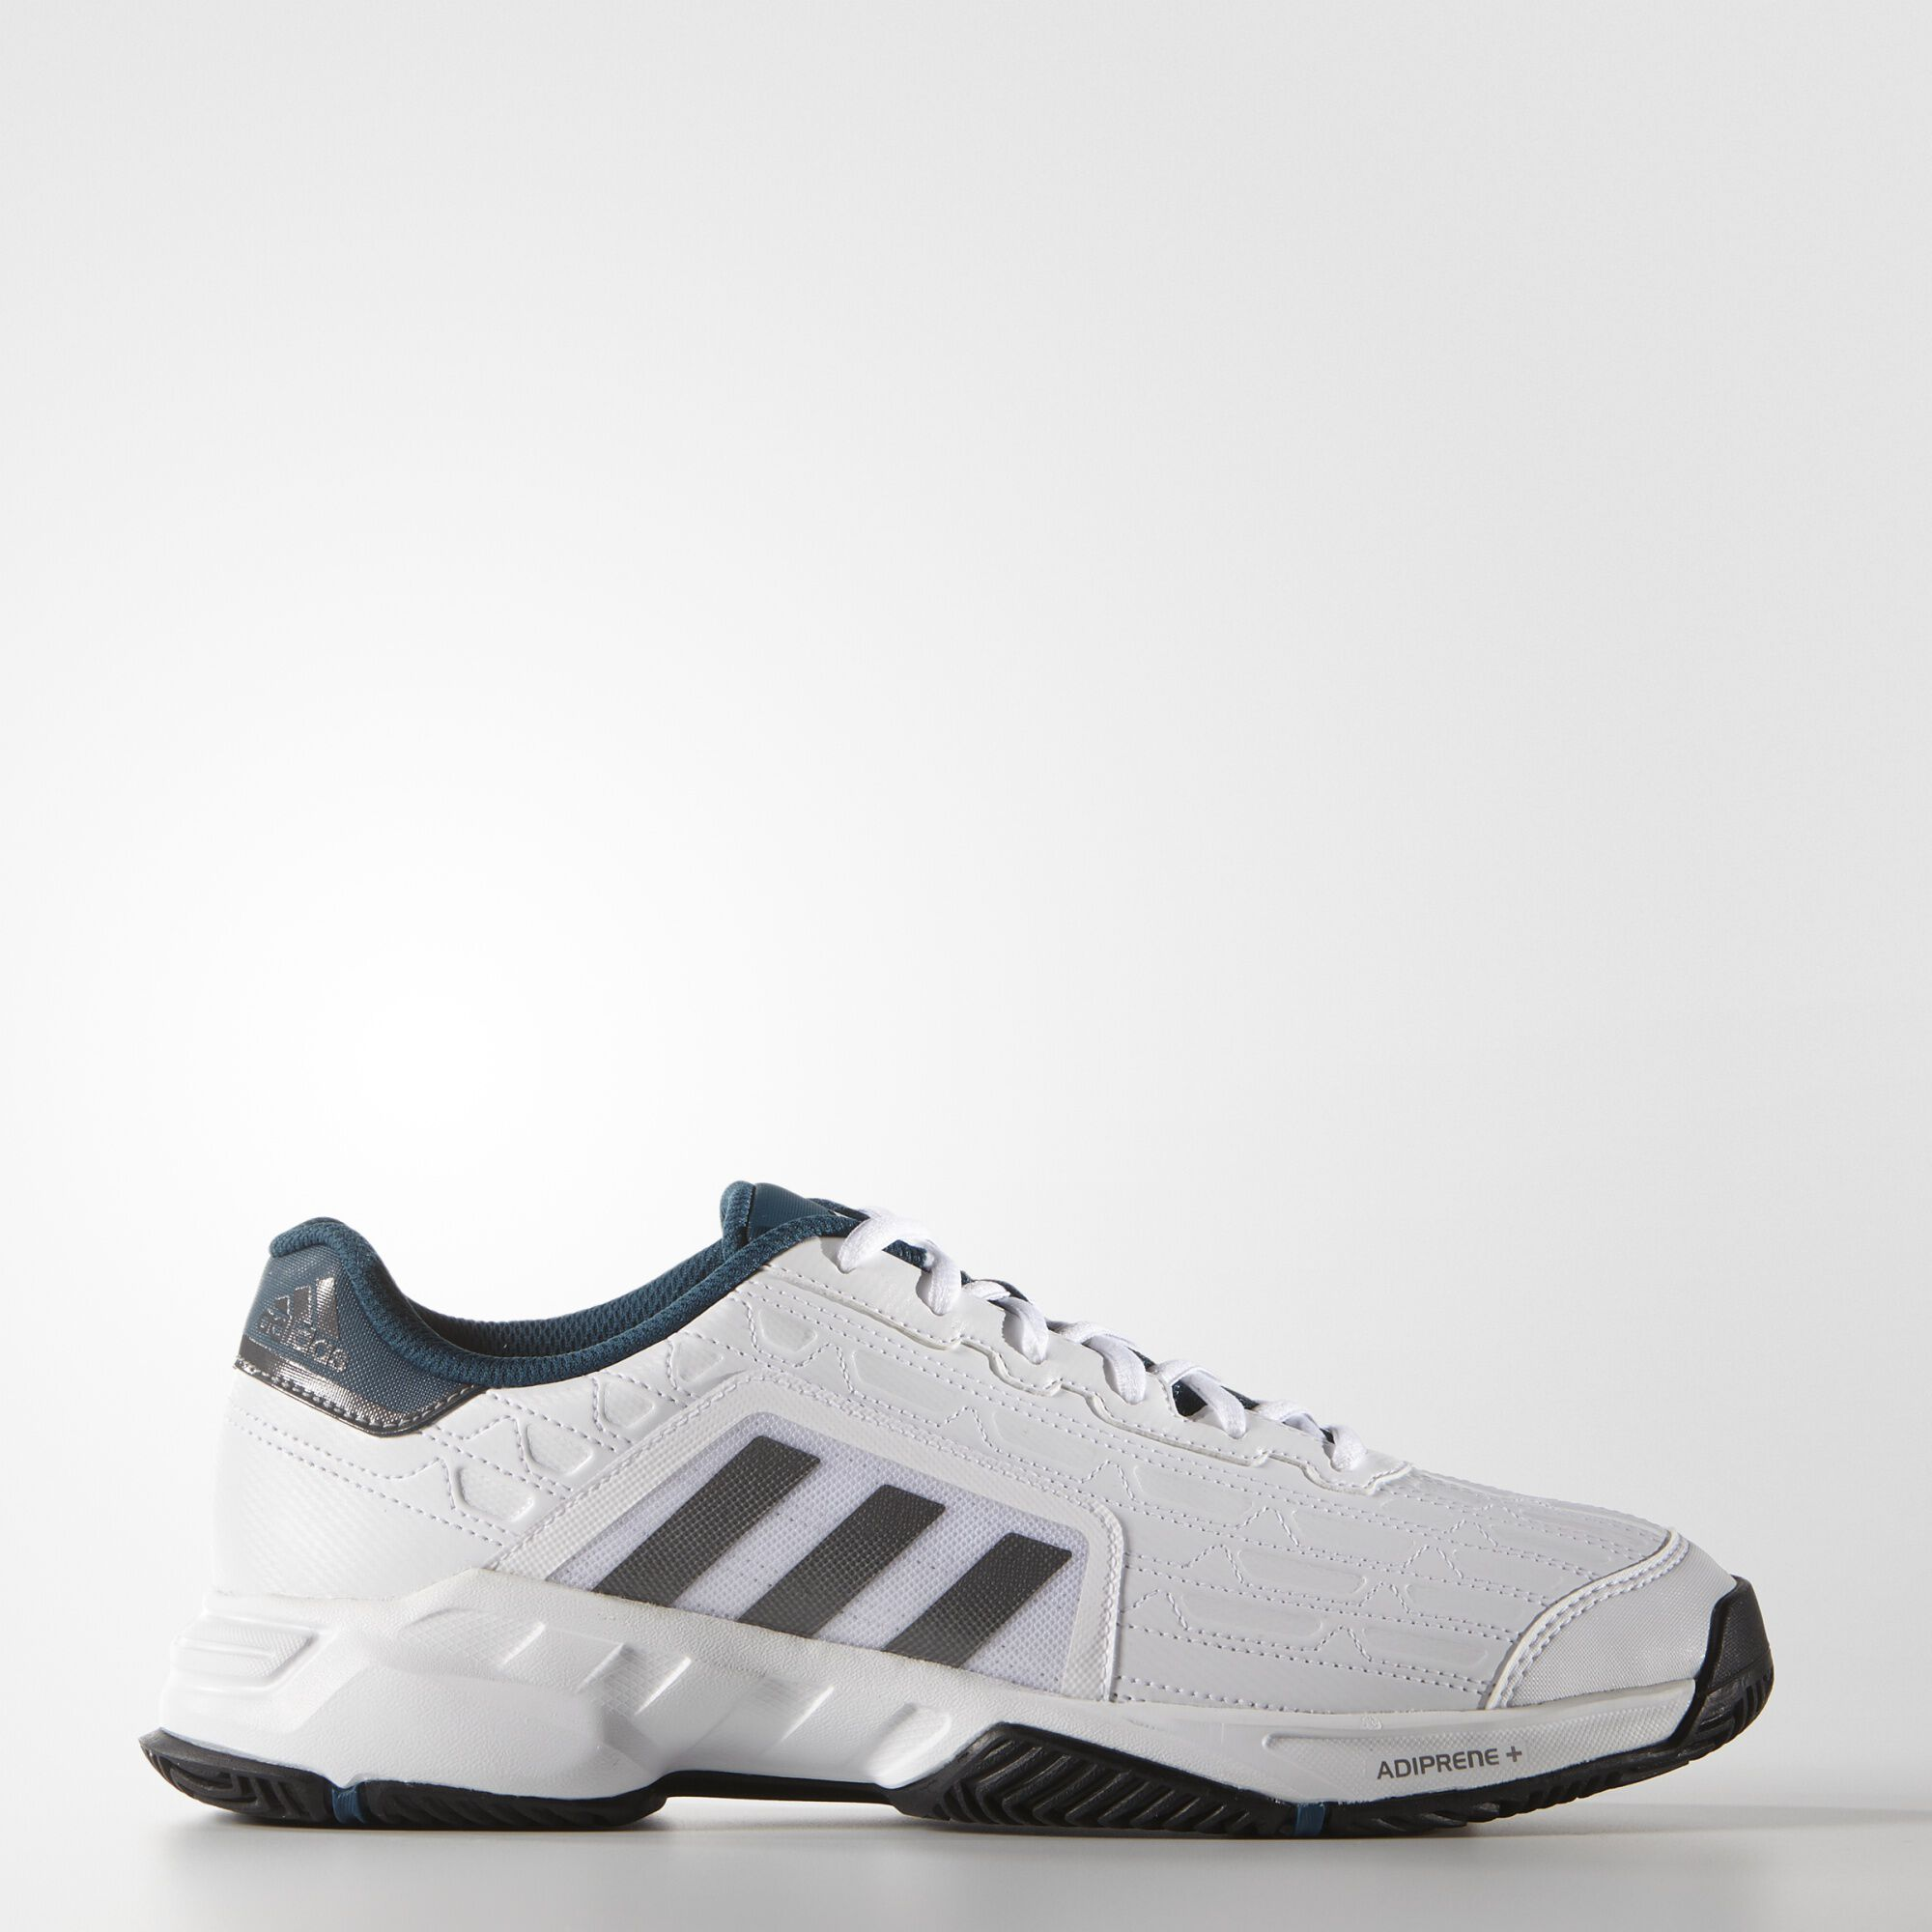 adidas tennis shoes on sale adidas shop buy adidas